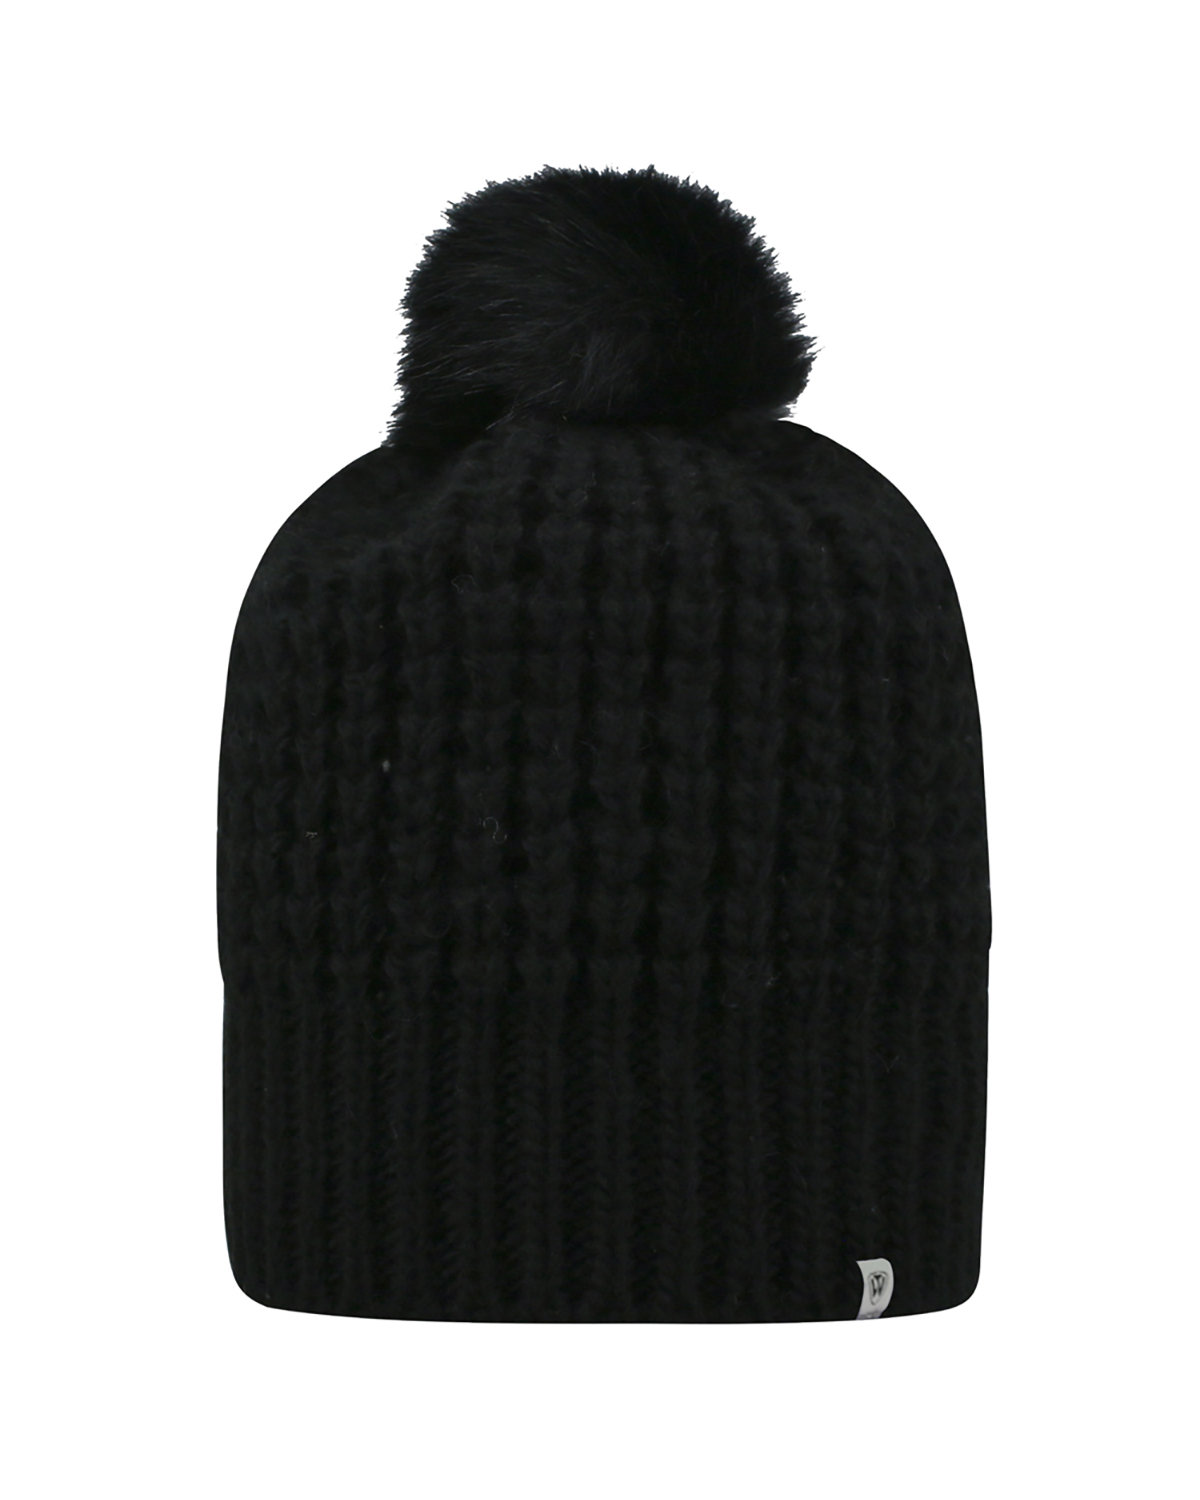 Top Of The World Adult Slouch Bunny Knit Cap BLACK